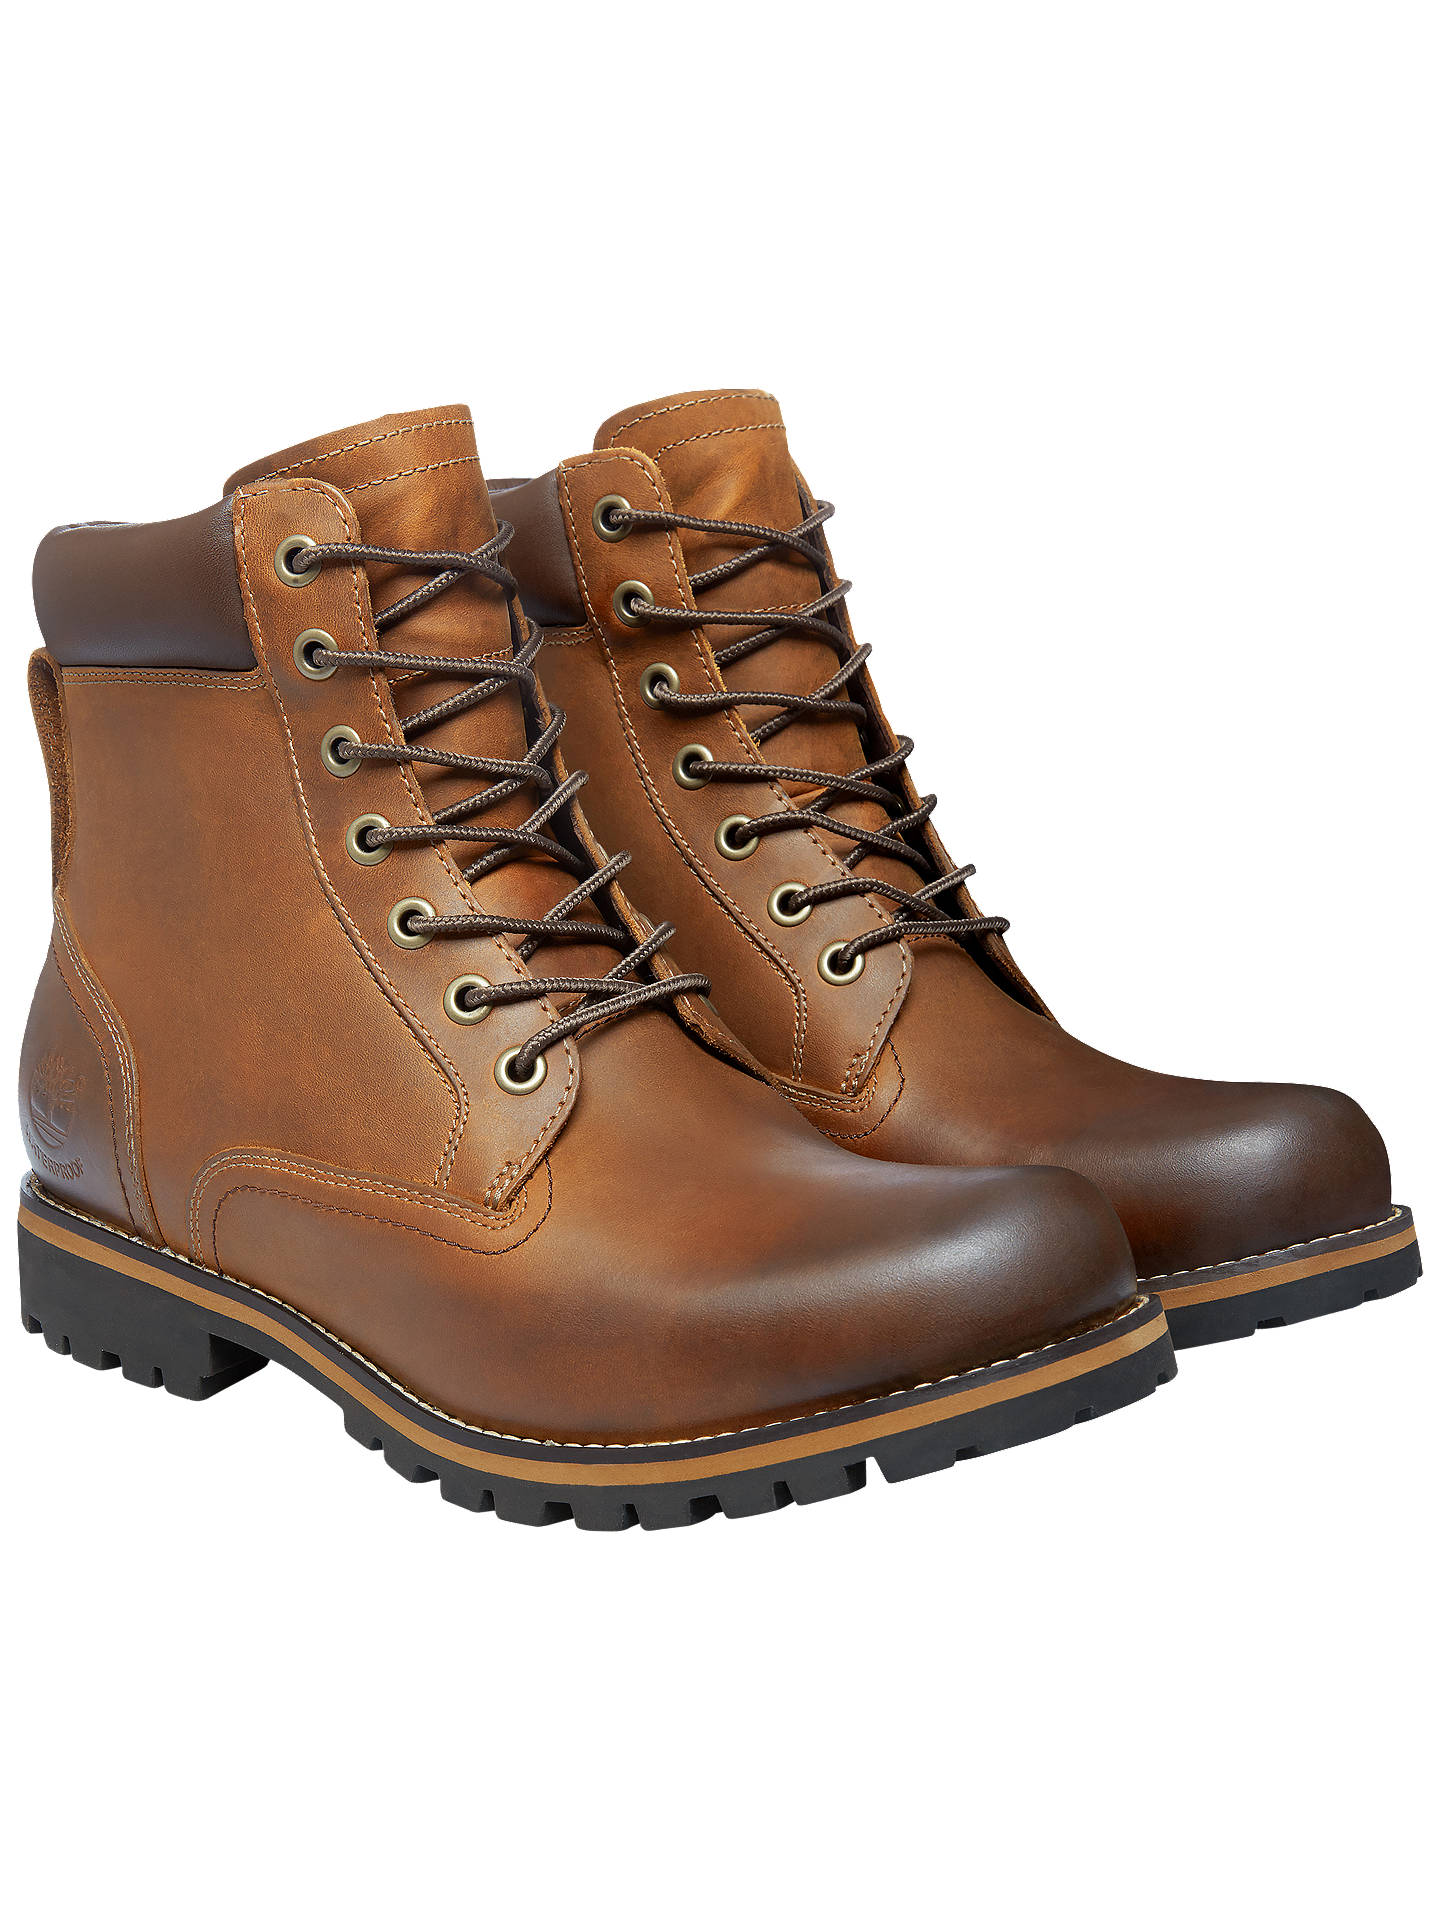 Timberland Earthkeepers Rugged 6 Inch Waterproof Plain Toe Boots Copper Roughcut 10 Online